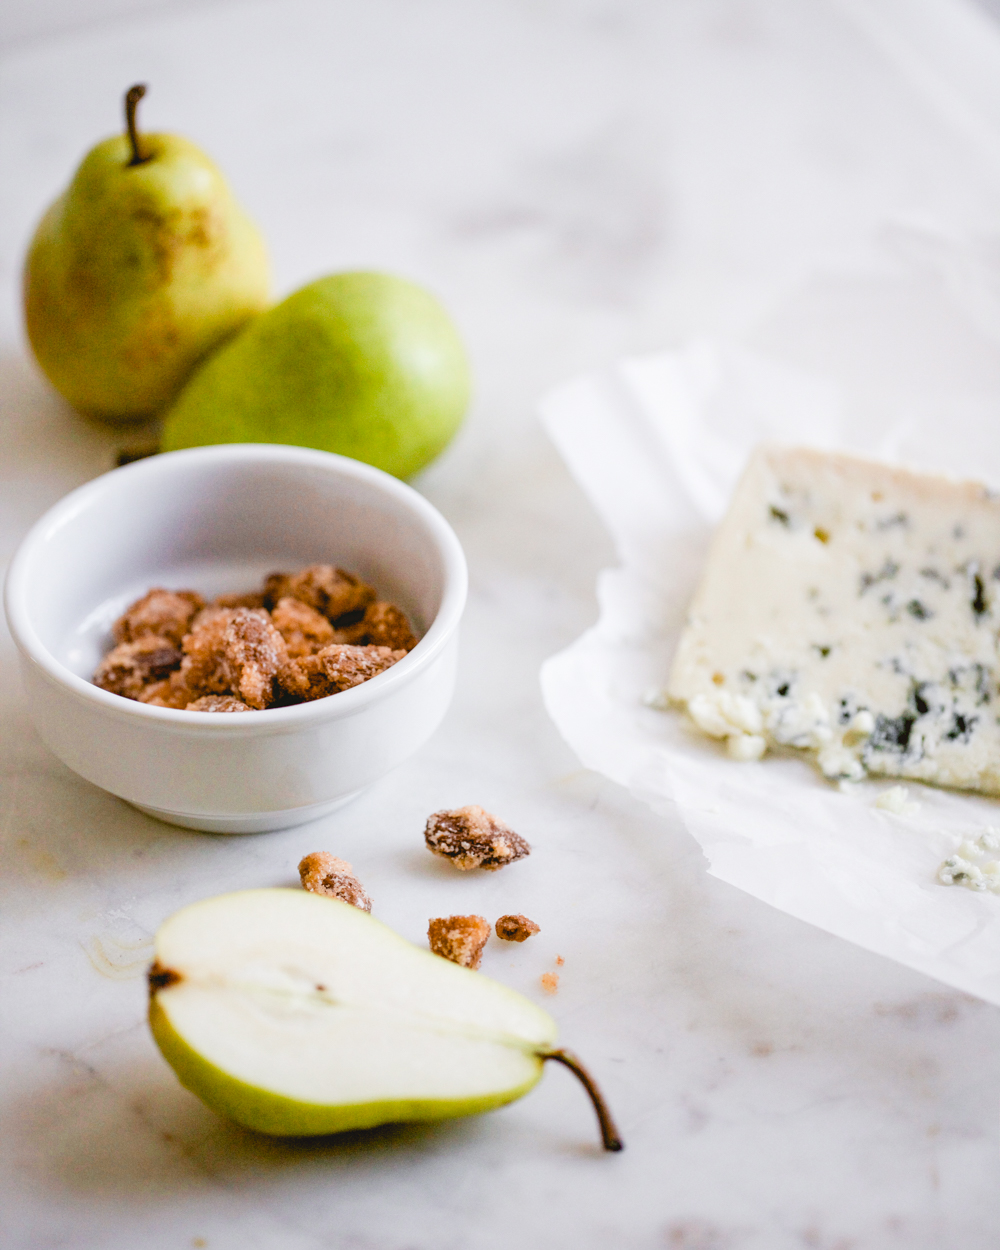 Winter salad with pear, candied almonds, and blue cheese recipe - Marisa Curatolo